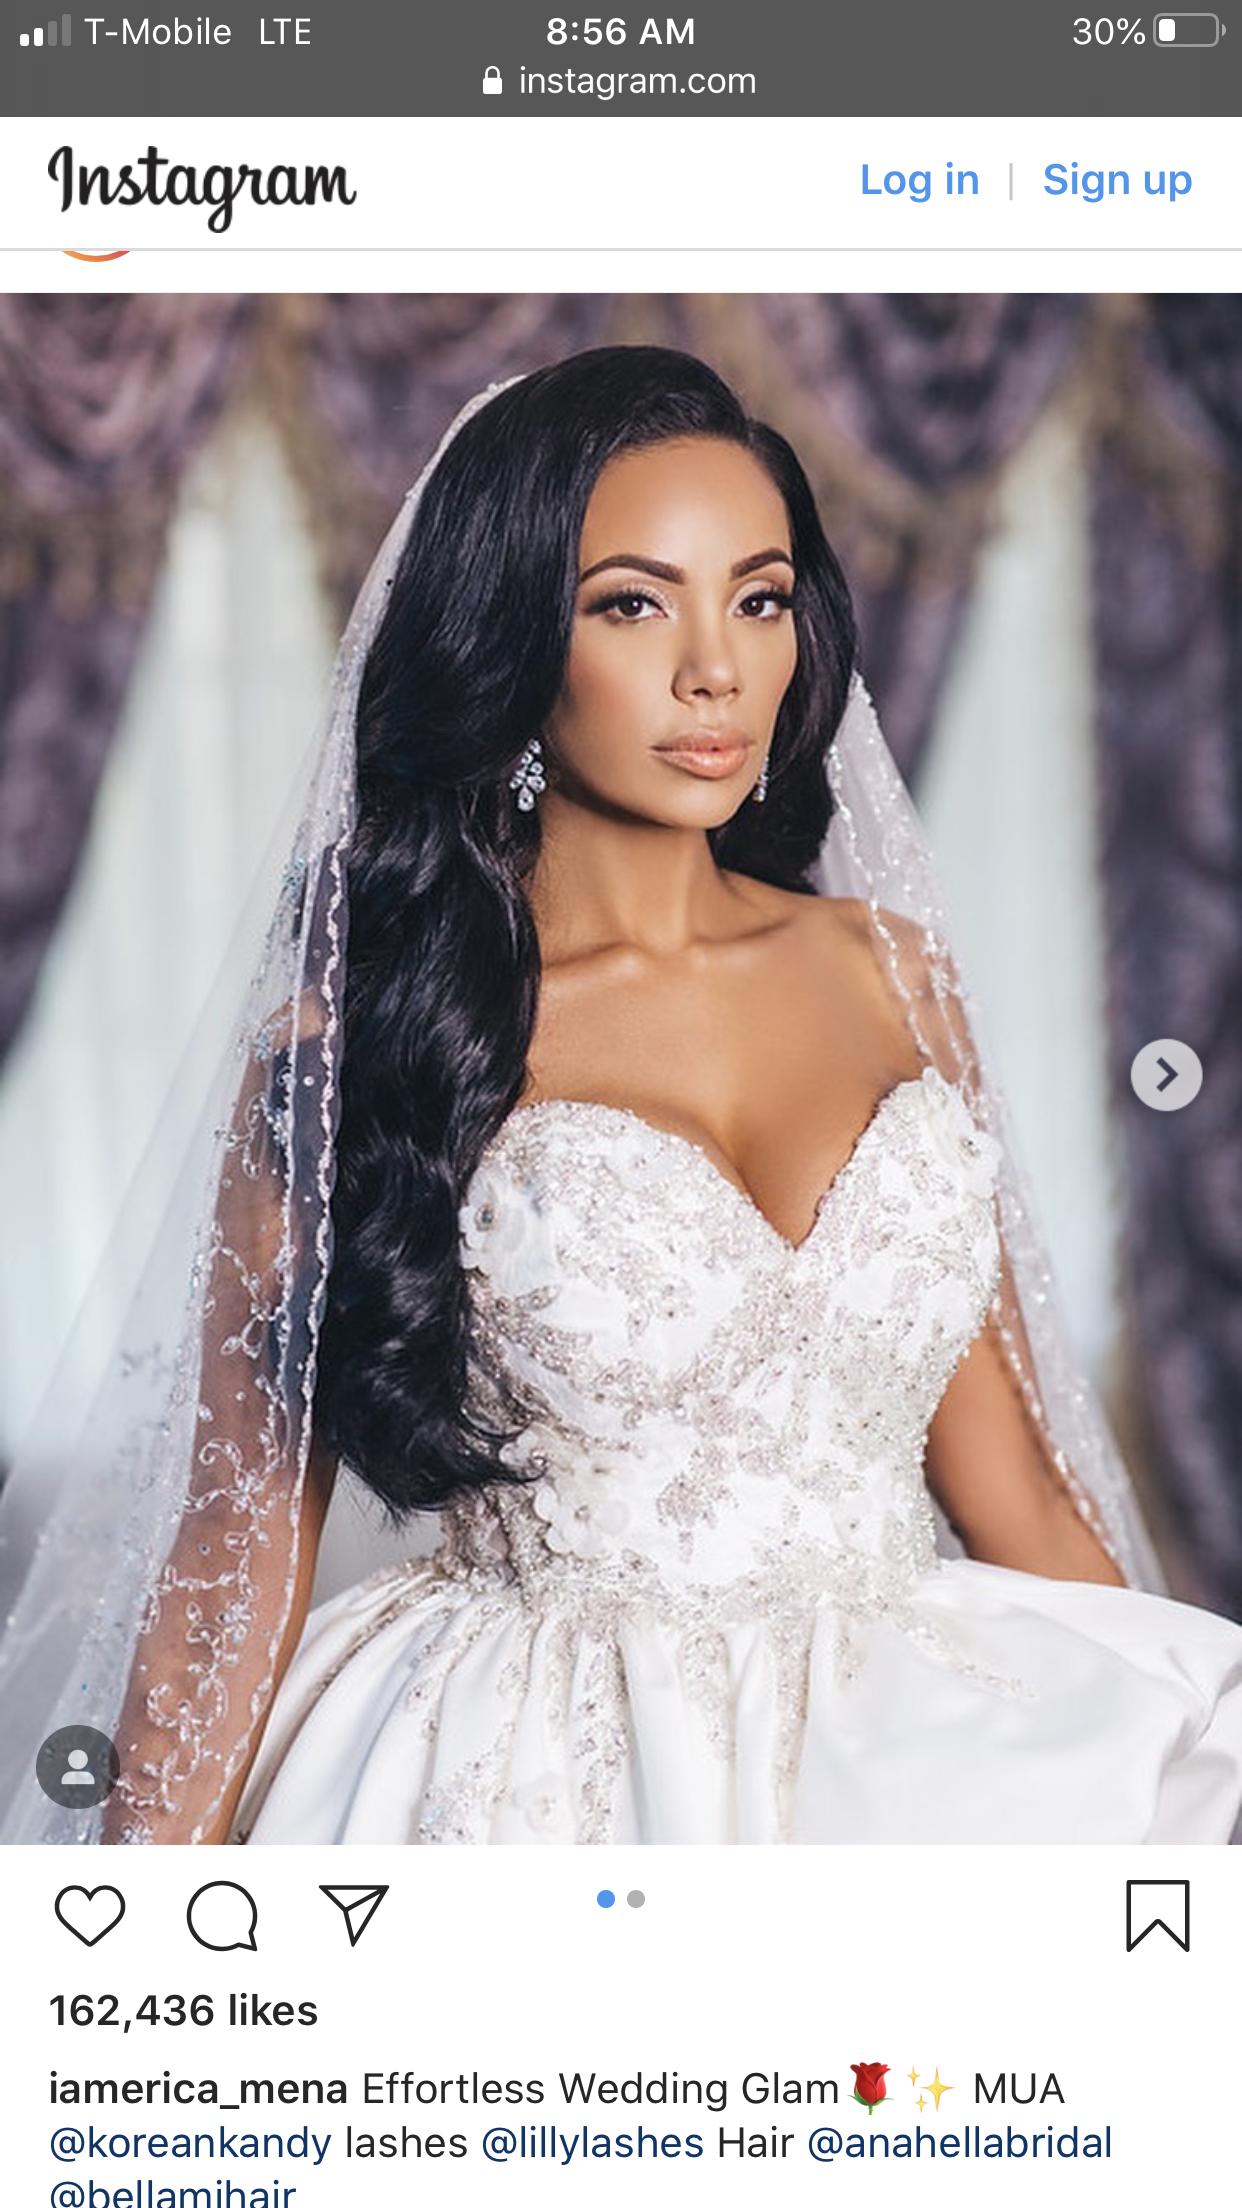 Pin By Andrea Estrada On Big Day In 2020 Bella Naija Weddings Glam Wedding Wedding Dresses